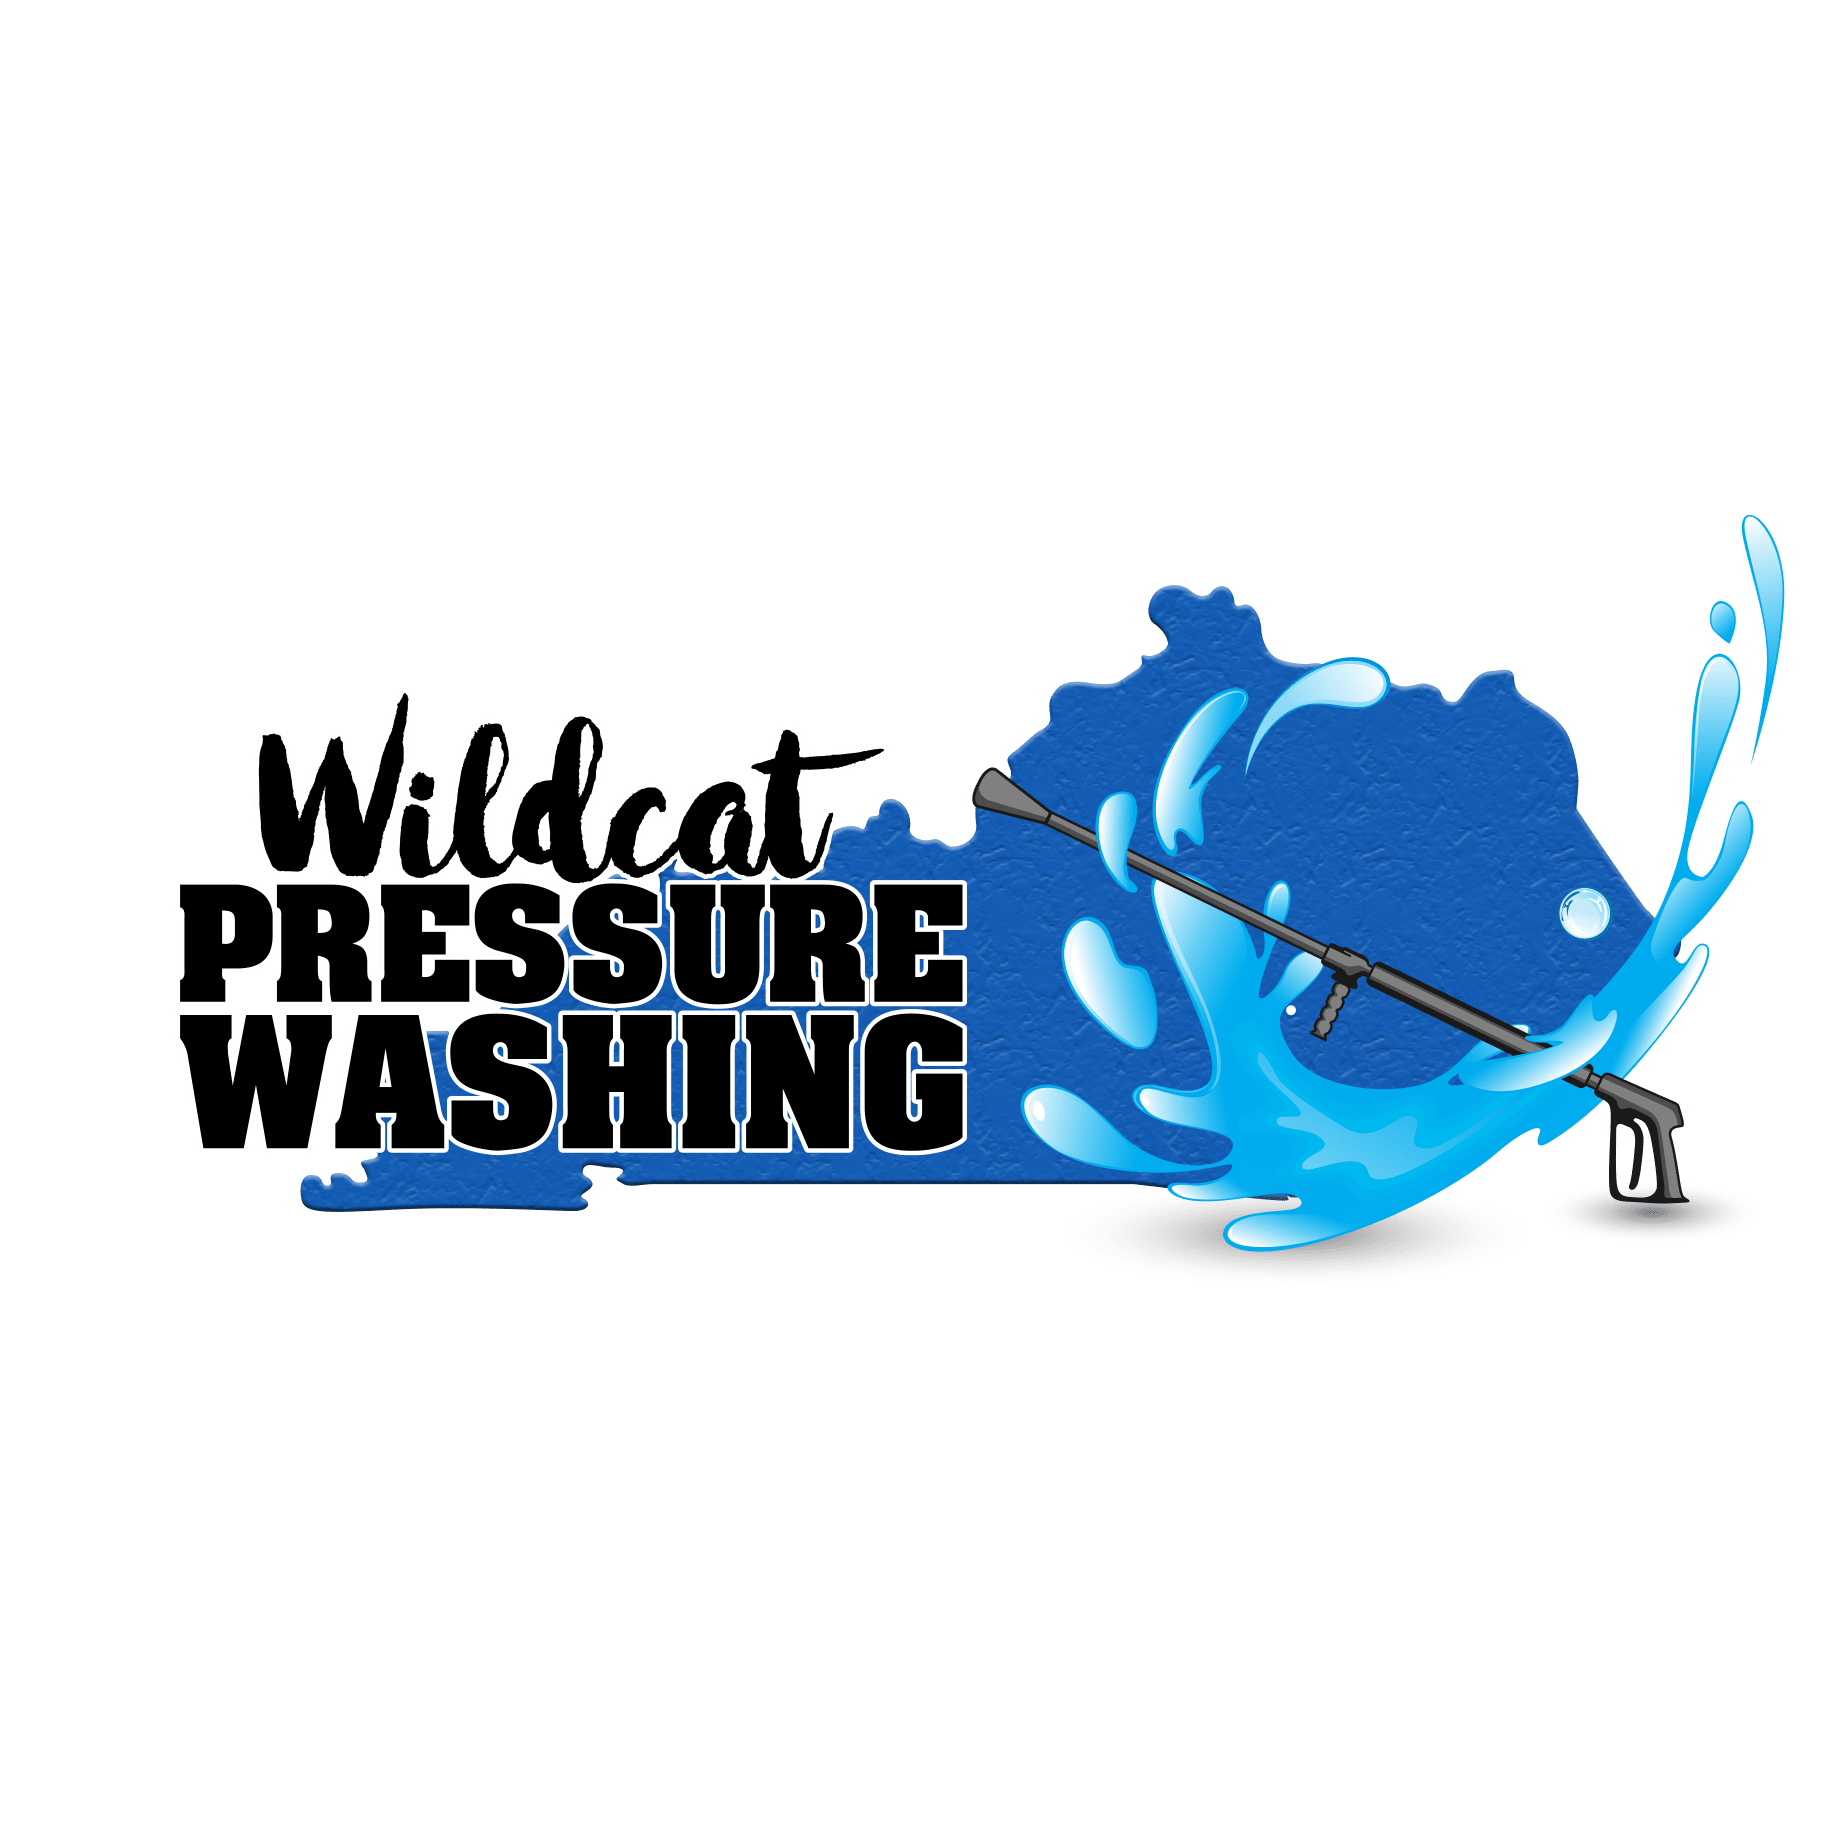 Wildcat Pressure Washing